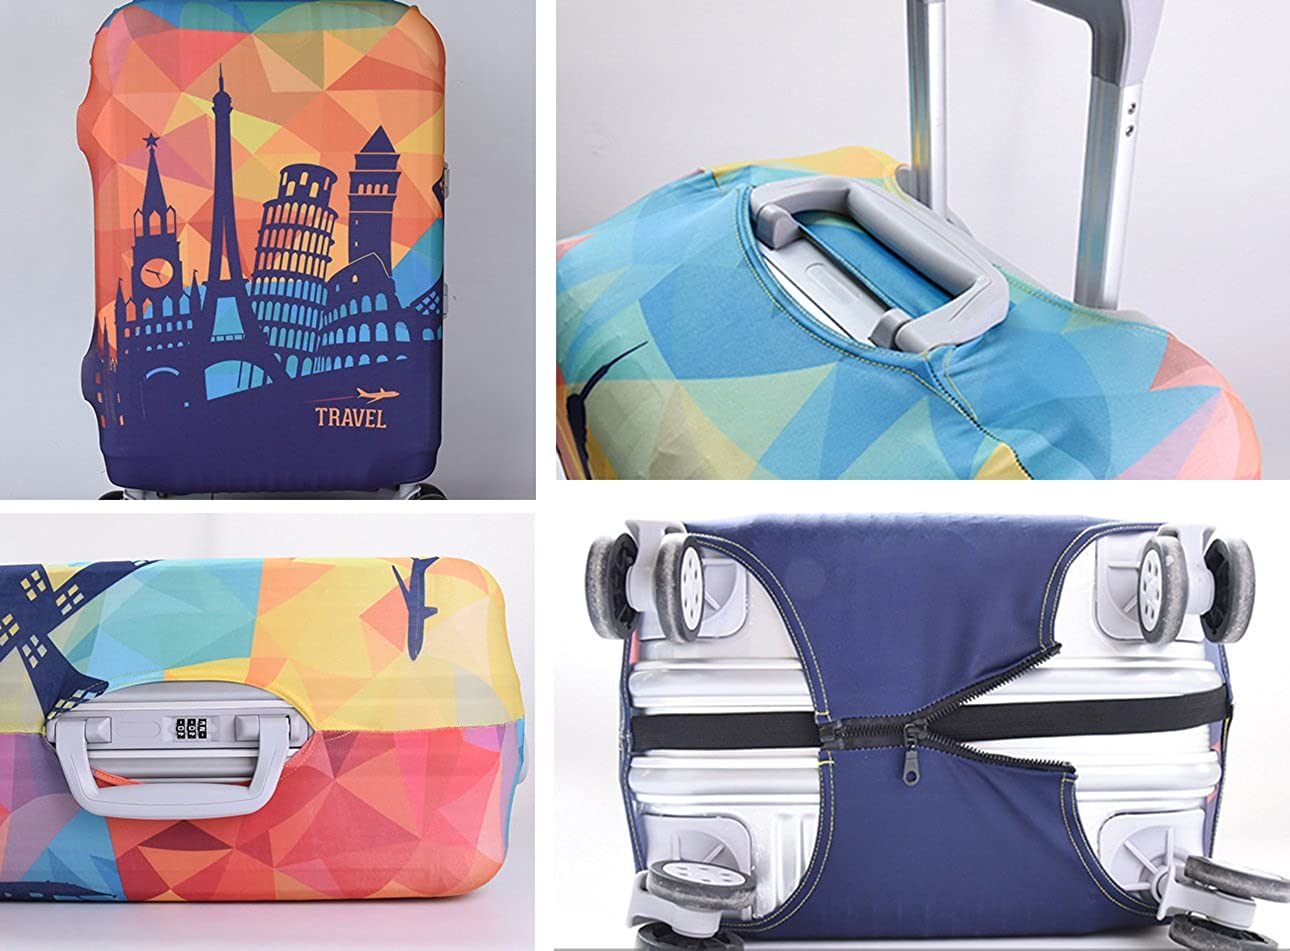 Printed Pattern Travel Luggage Cover Baggage Suitcase Protector Polyester Dustproof Stretchy